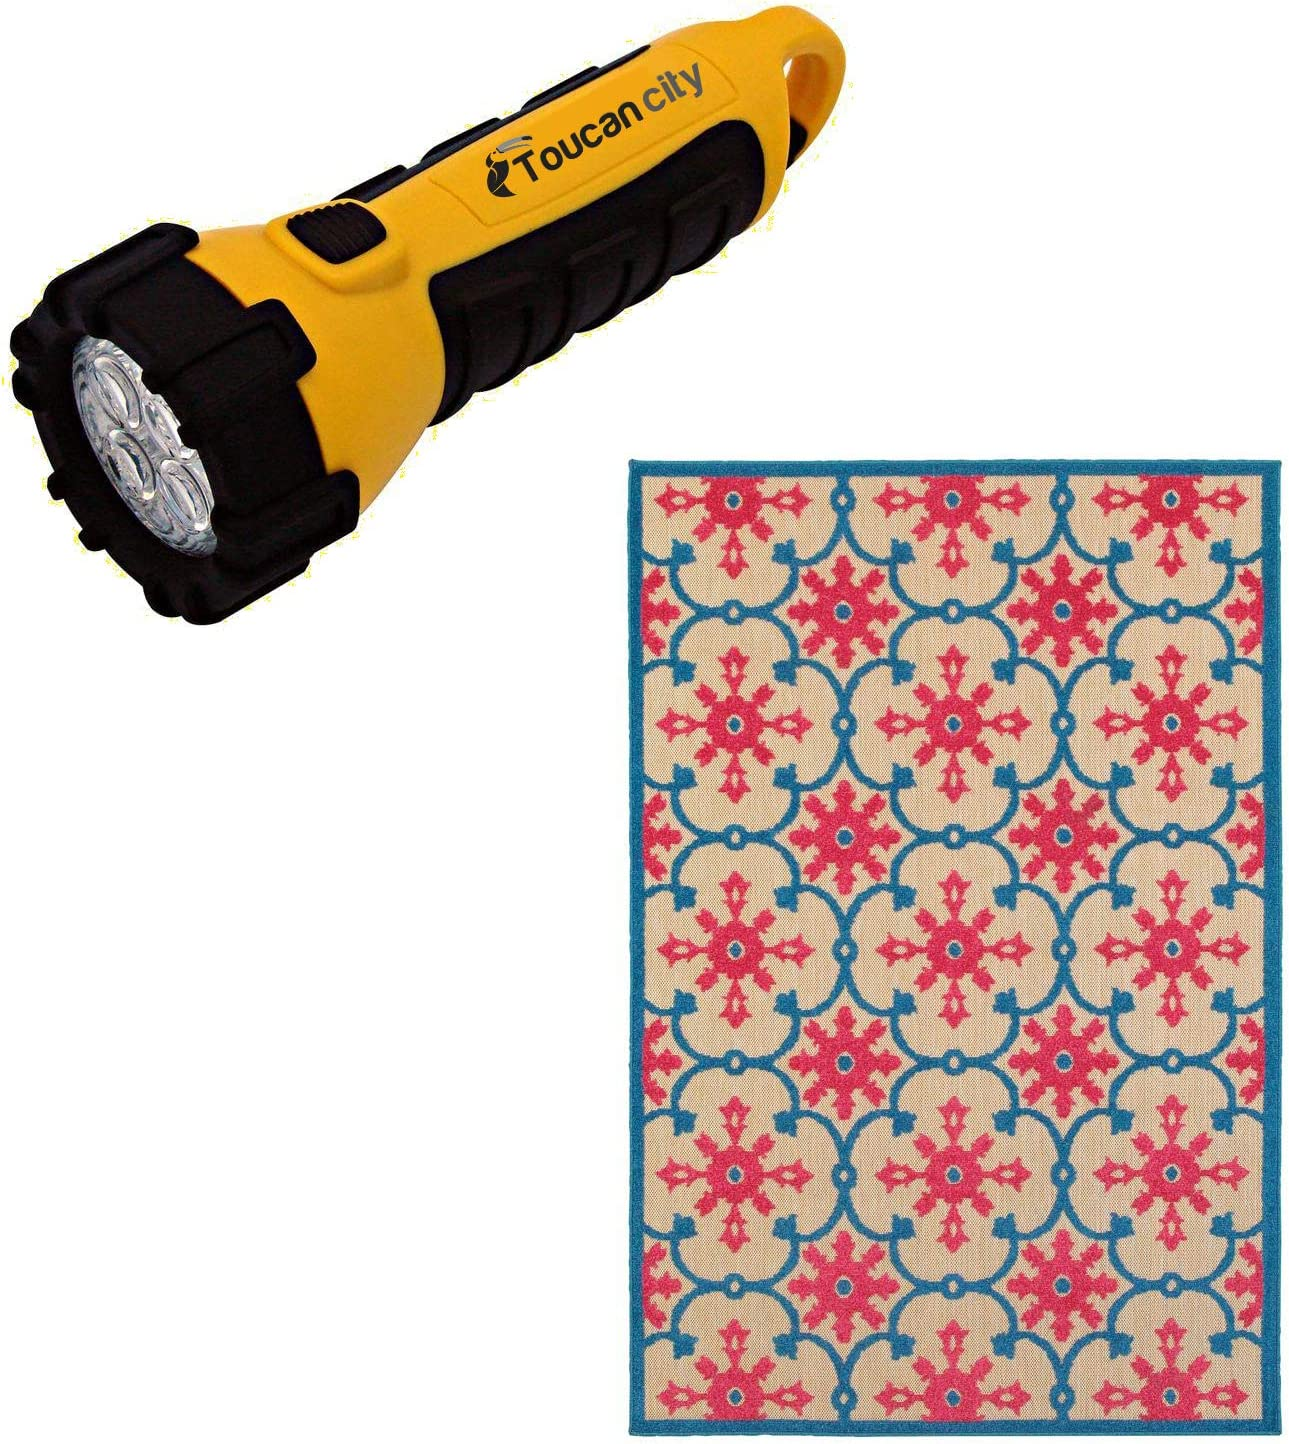 Toucan City LED Flashlight and Home Decorators Collection Lilo Red/Blue 5 ft. x 8 ft. Outdoor Area Rug 9905730110